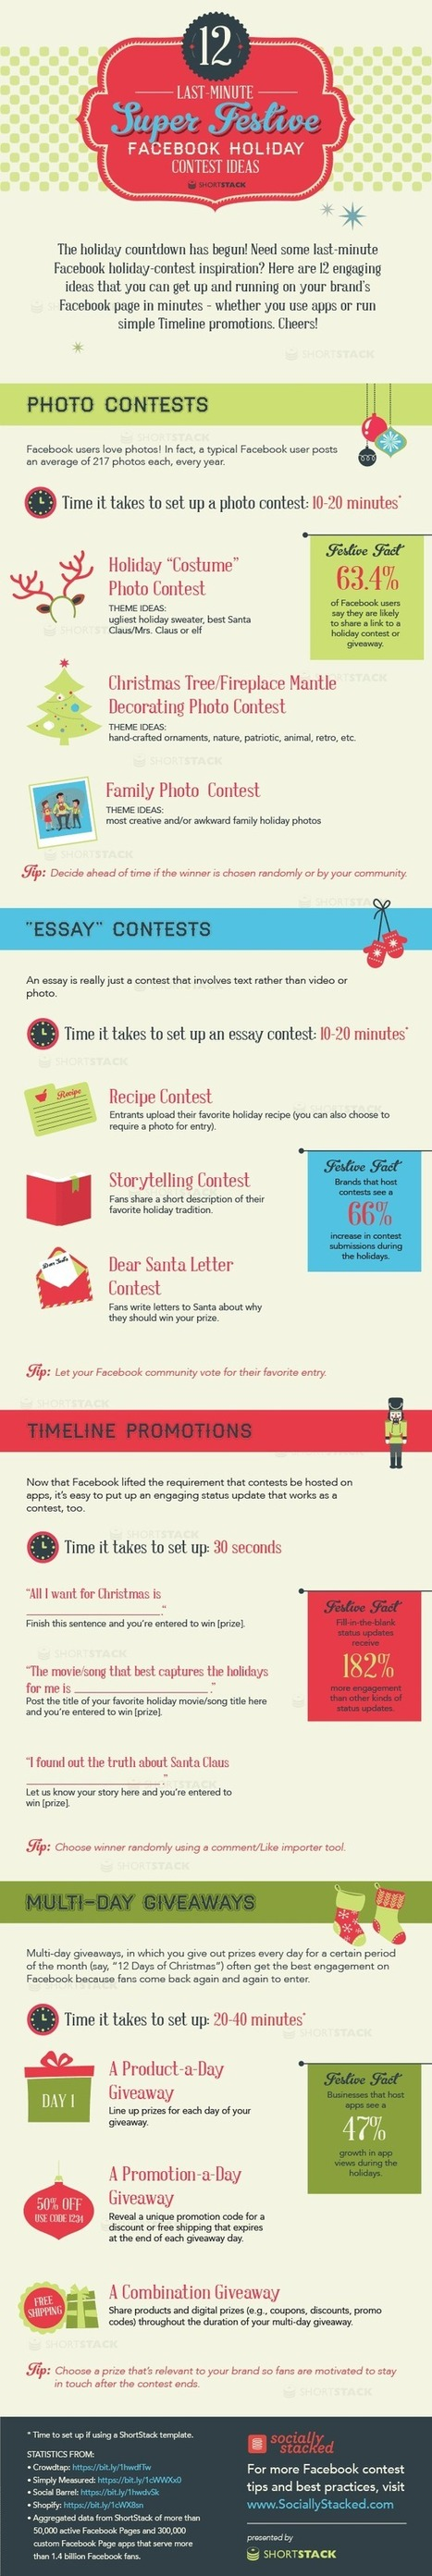 12 Last-Minute Festive Facebook Holiday Contests - Infographic | Social Marketing Revolution | Scoop.it